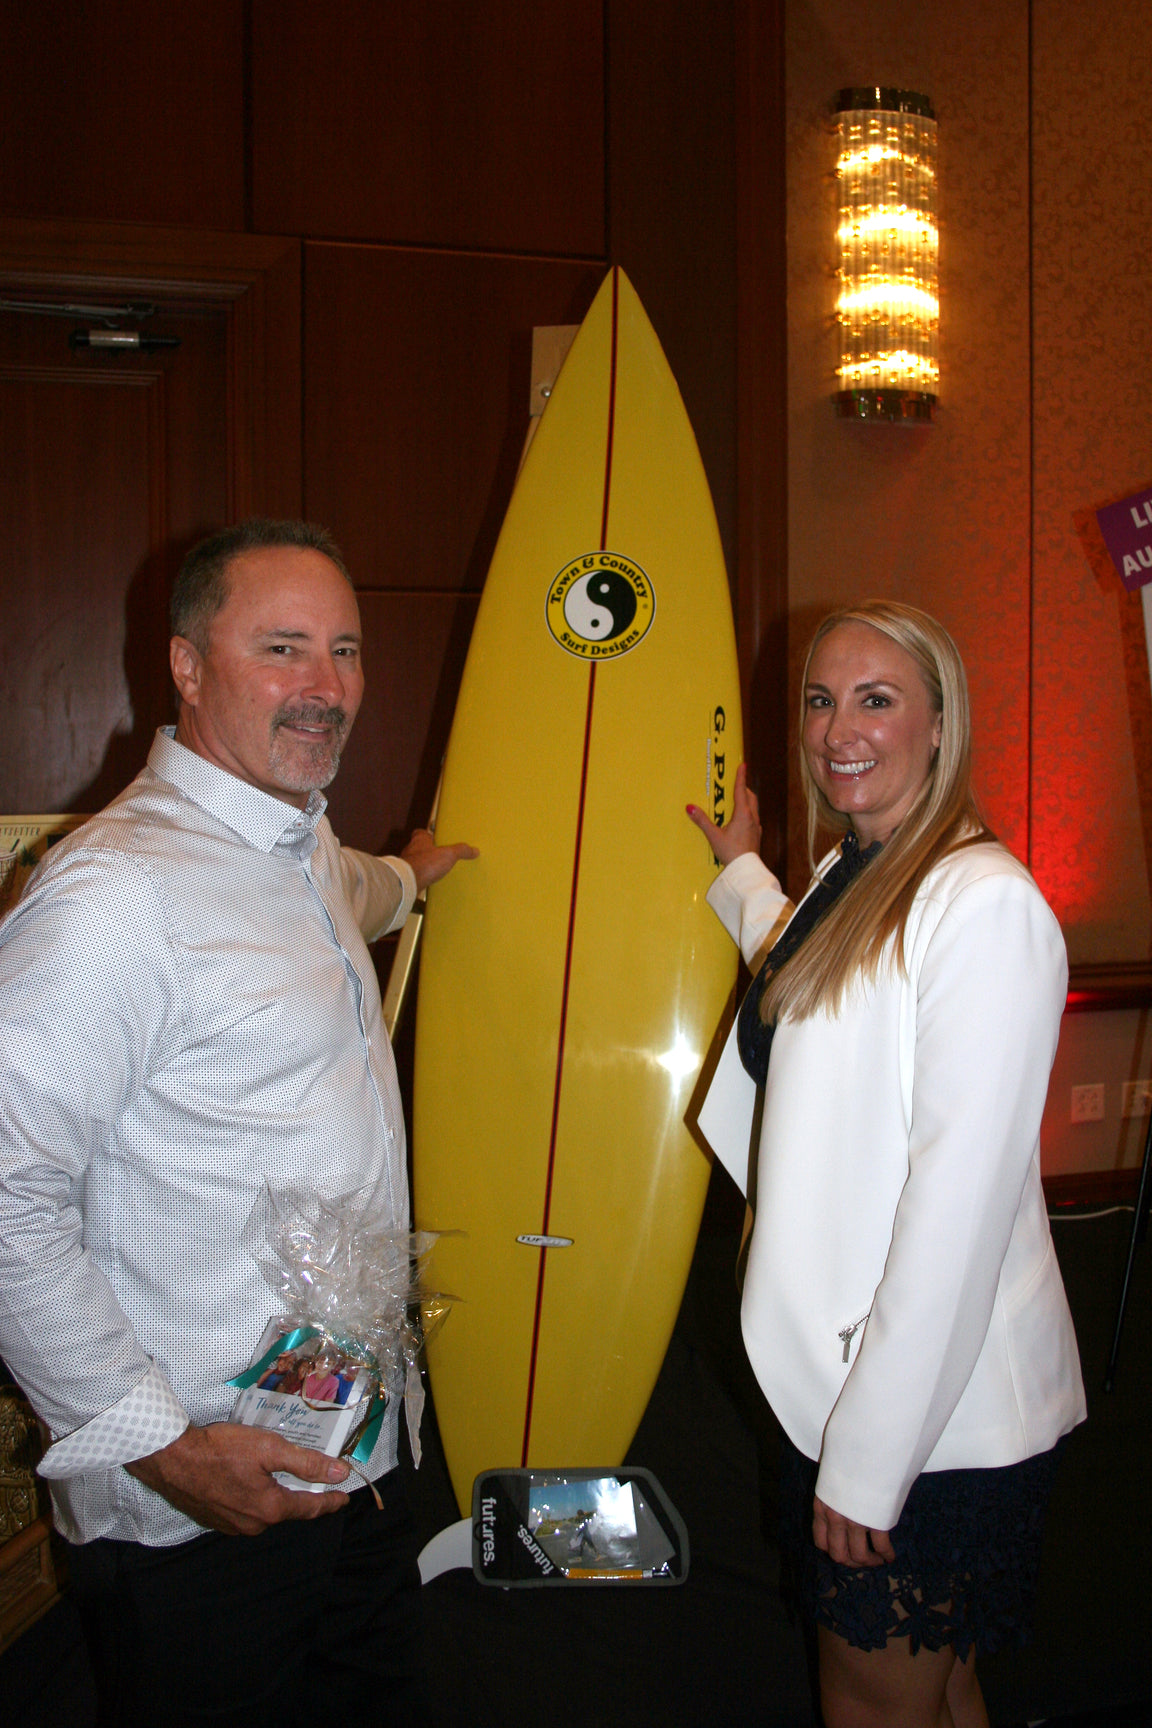 A man and a woman posing in front of a surfboard